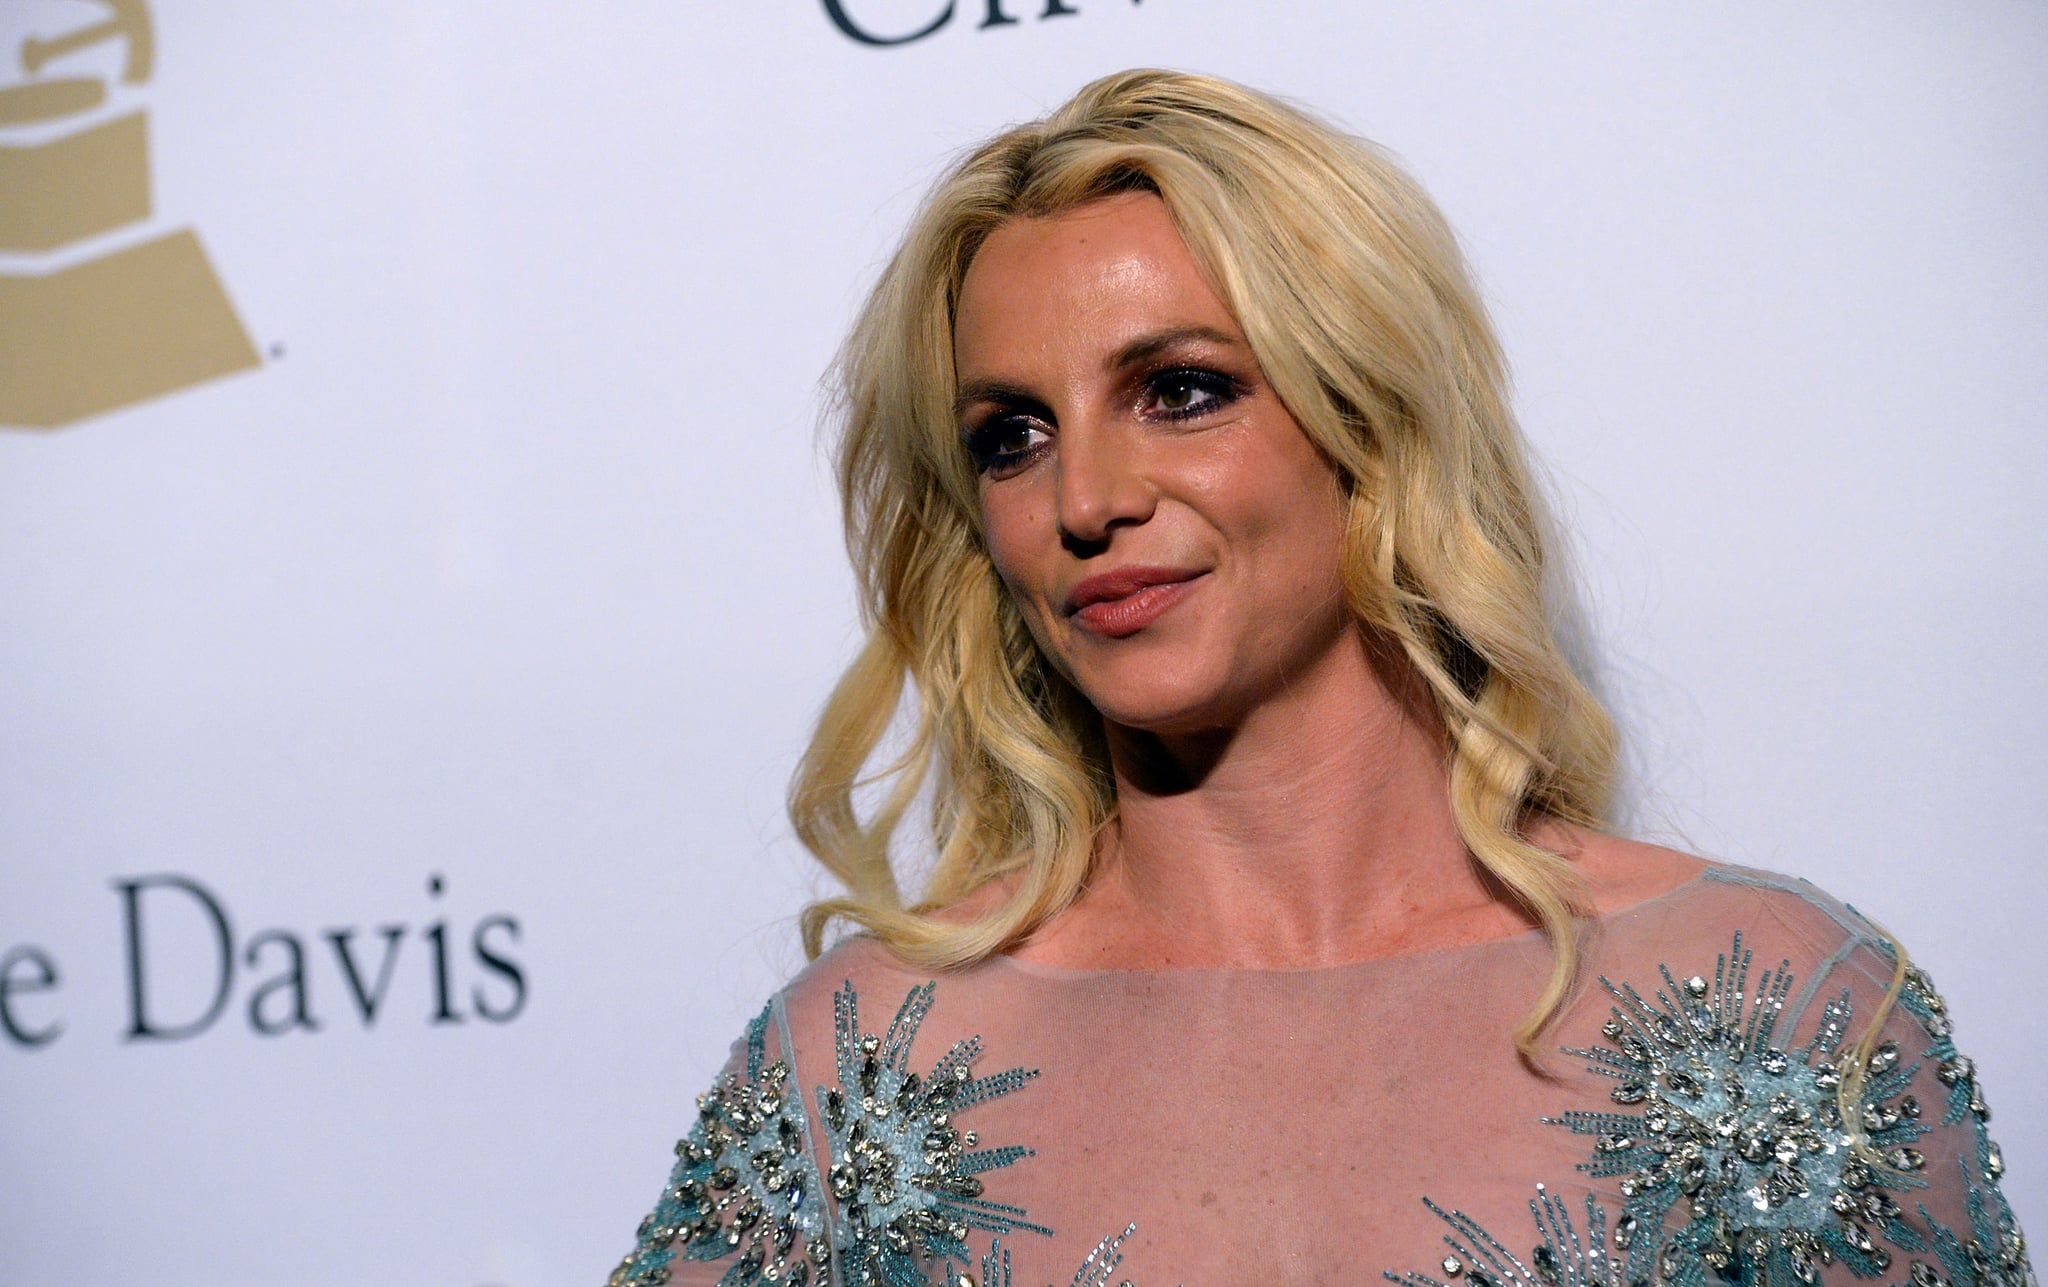 BEVERLY HILLS, CA - FEBRUARY 11:  Singer Britney Spears walks the red carpet at the 2017 Pre-GRAMMY Gala And Salute to Industry Icons Honoring Debra Lee at The Beverly Hilton Hotel on February 11, 2017 in Beverly Hills, California.  (Photo by Scott Dudelson/Getty Images)